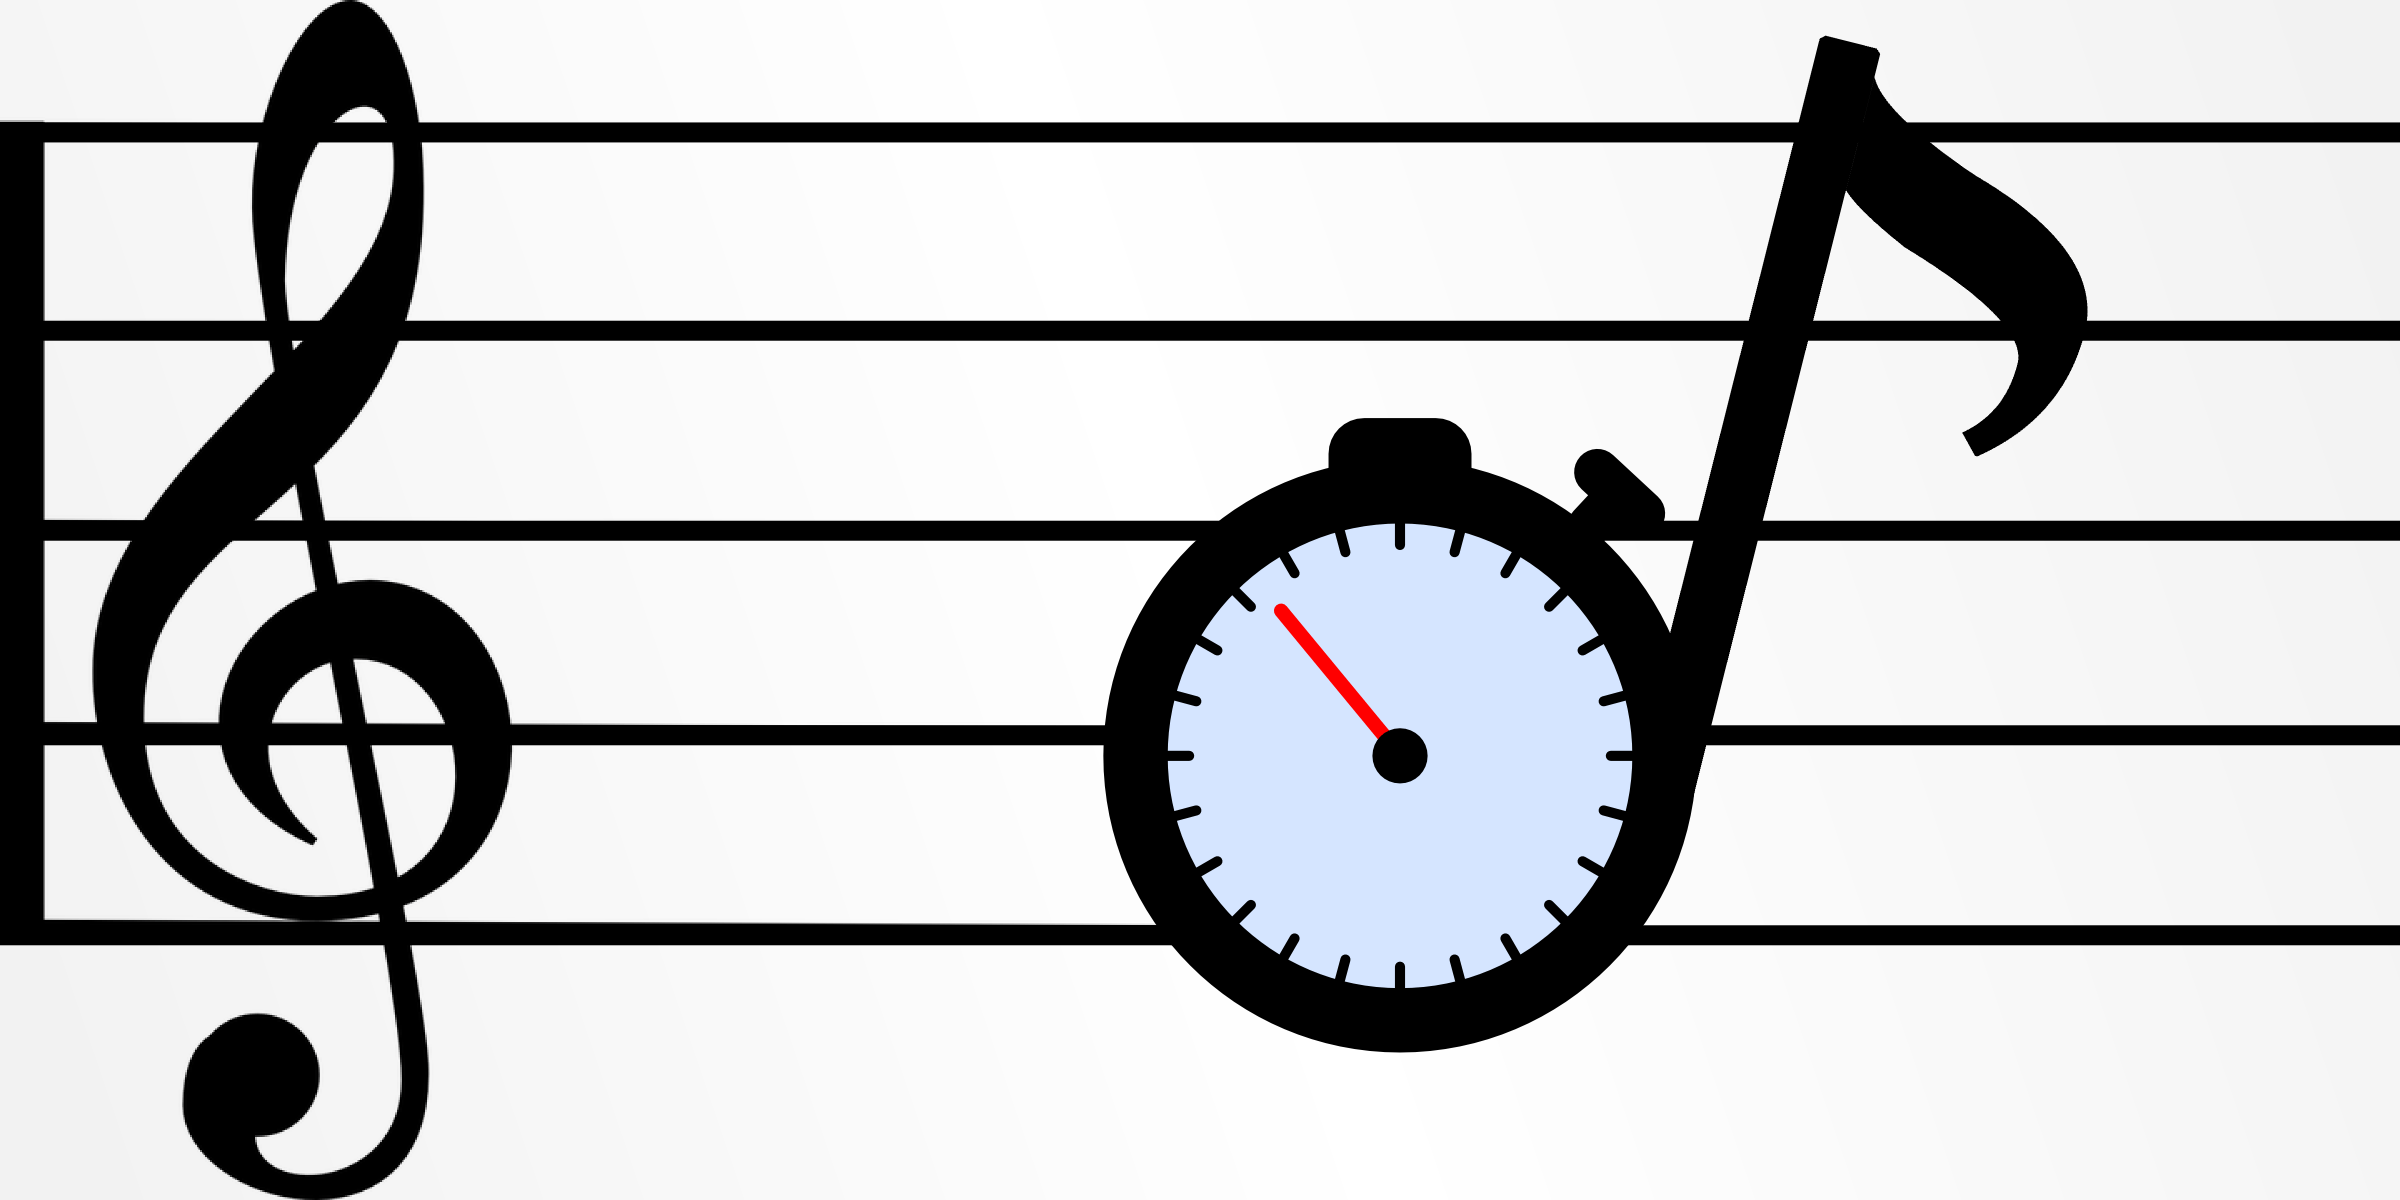 How to Make a Timer App that Stores Sound and Vibration Settings in